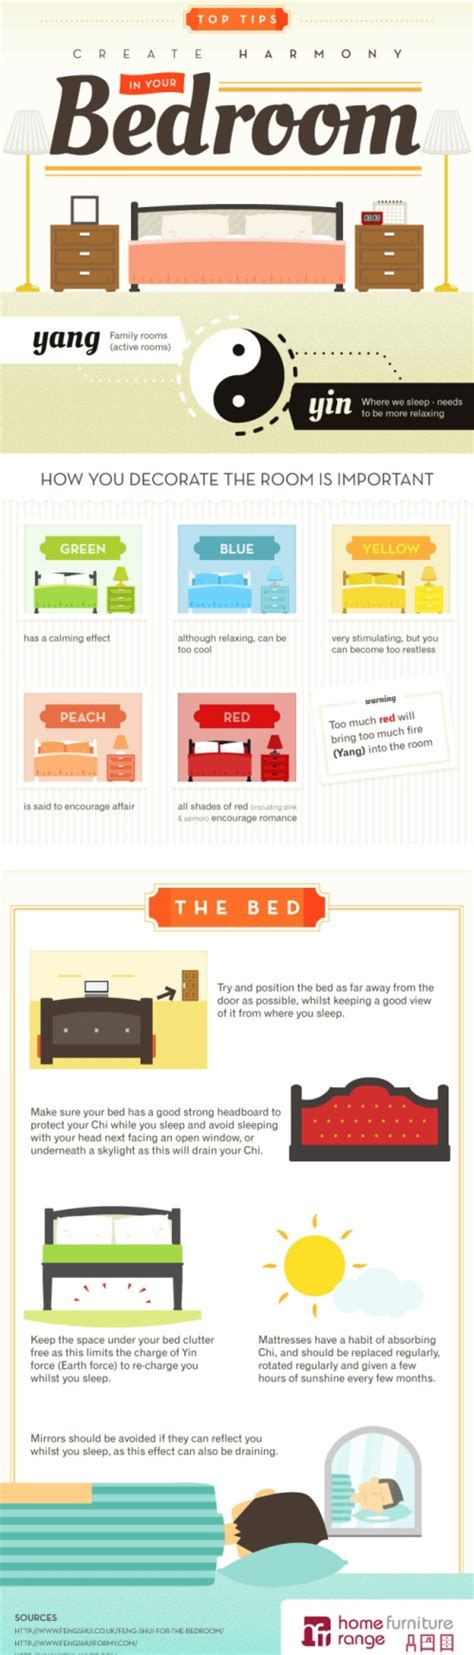 how to fung shway your bedroom feng shui your bedroom for folat